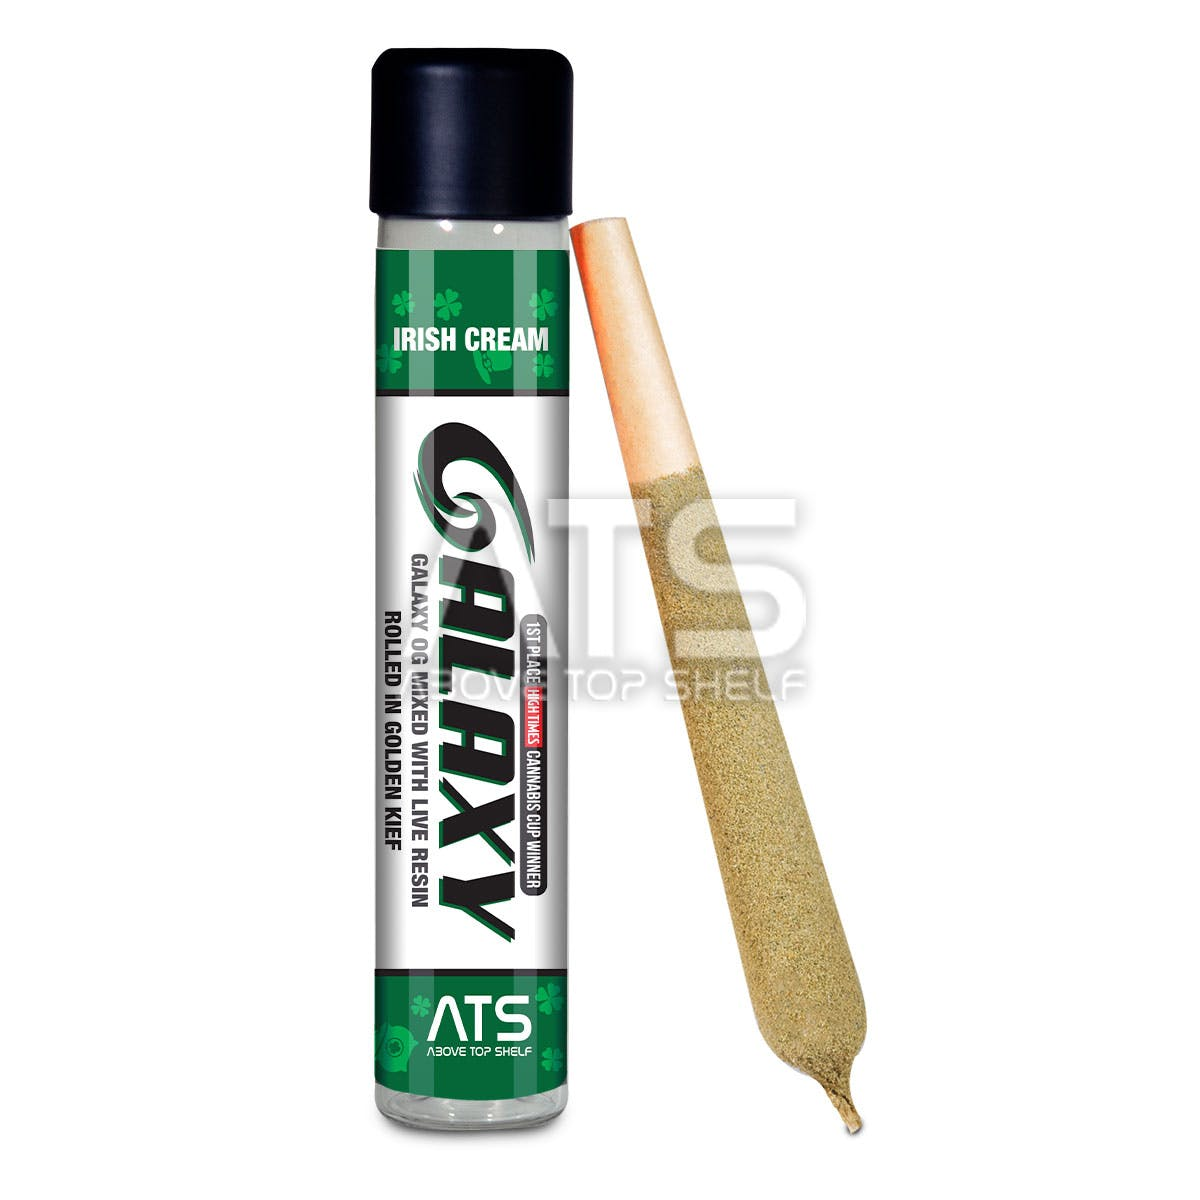 marijuana-dispensaries-pac-house-of-top-shelf-25-cap-in-sylmar-irish-cream-galaxy-pre-roll